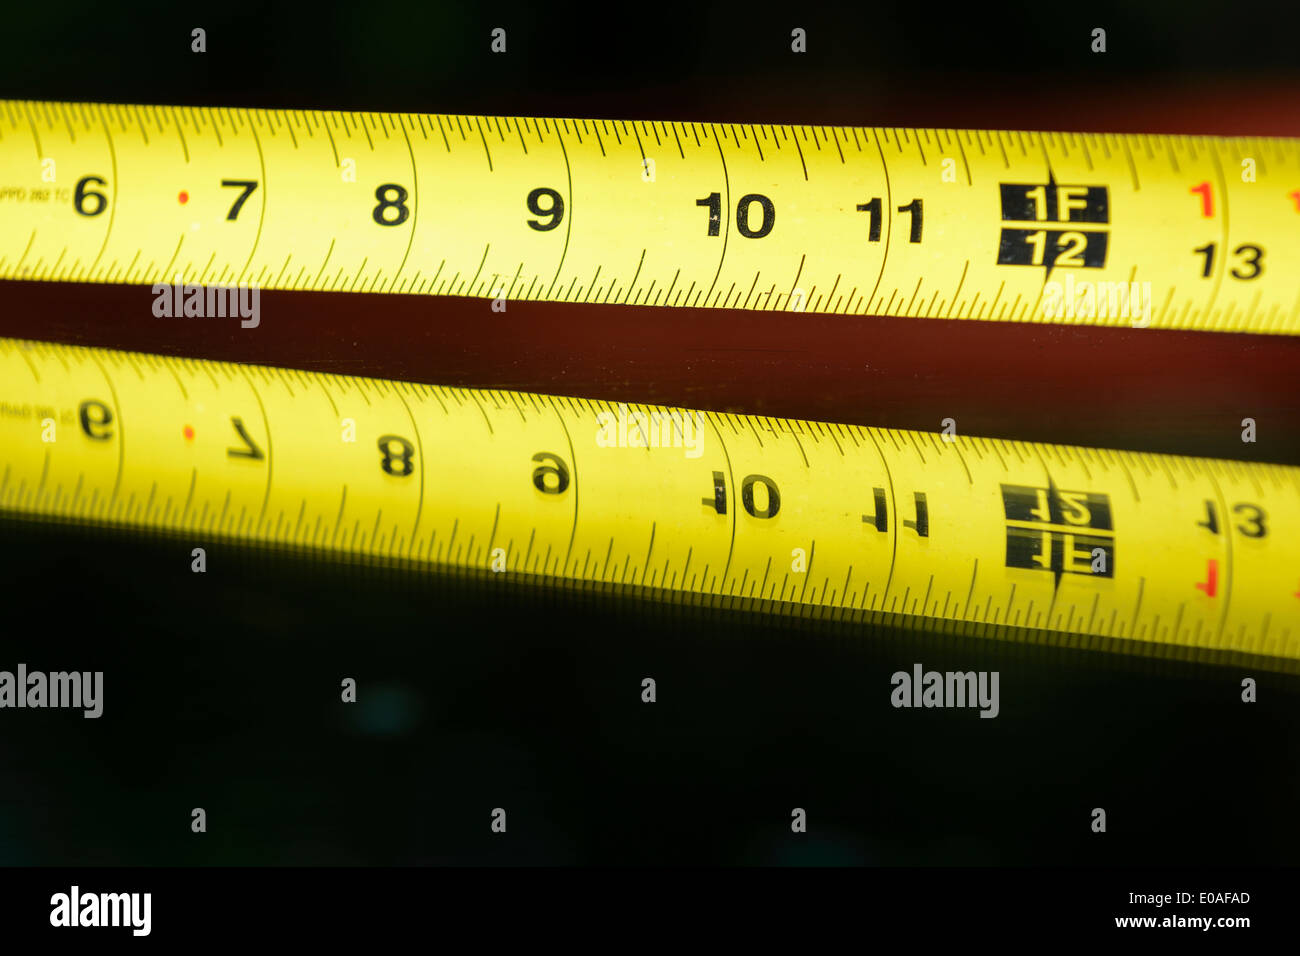 Carpenter's retractable tape measure tool. - Stock Image